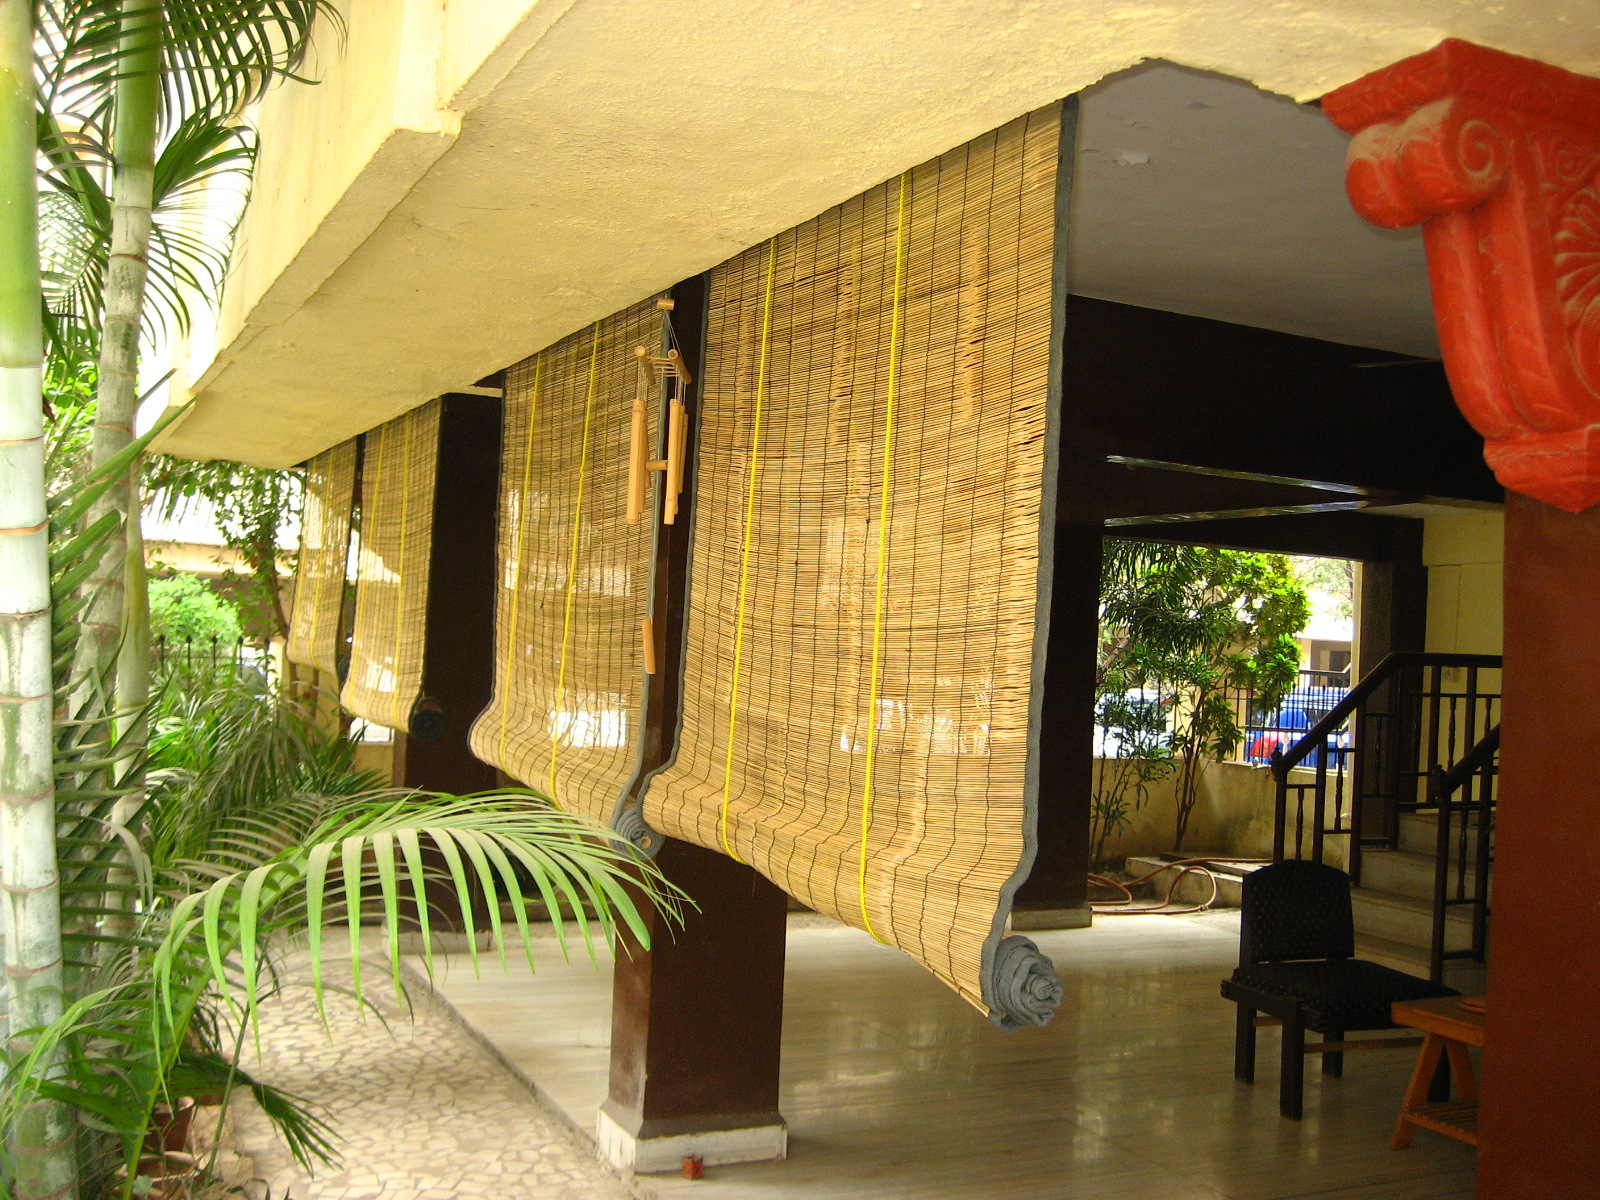 Curtain For Balcony: Bamboo Shades For Porches